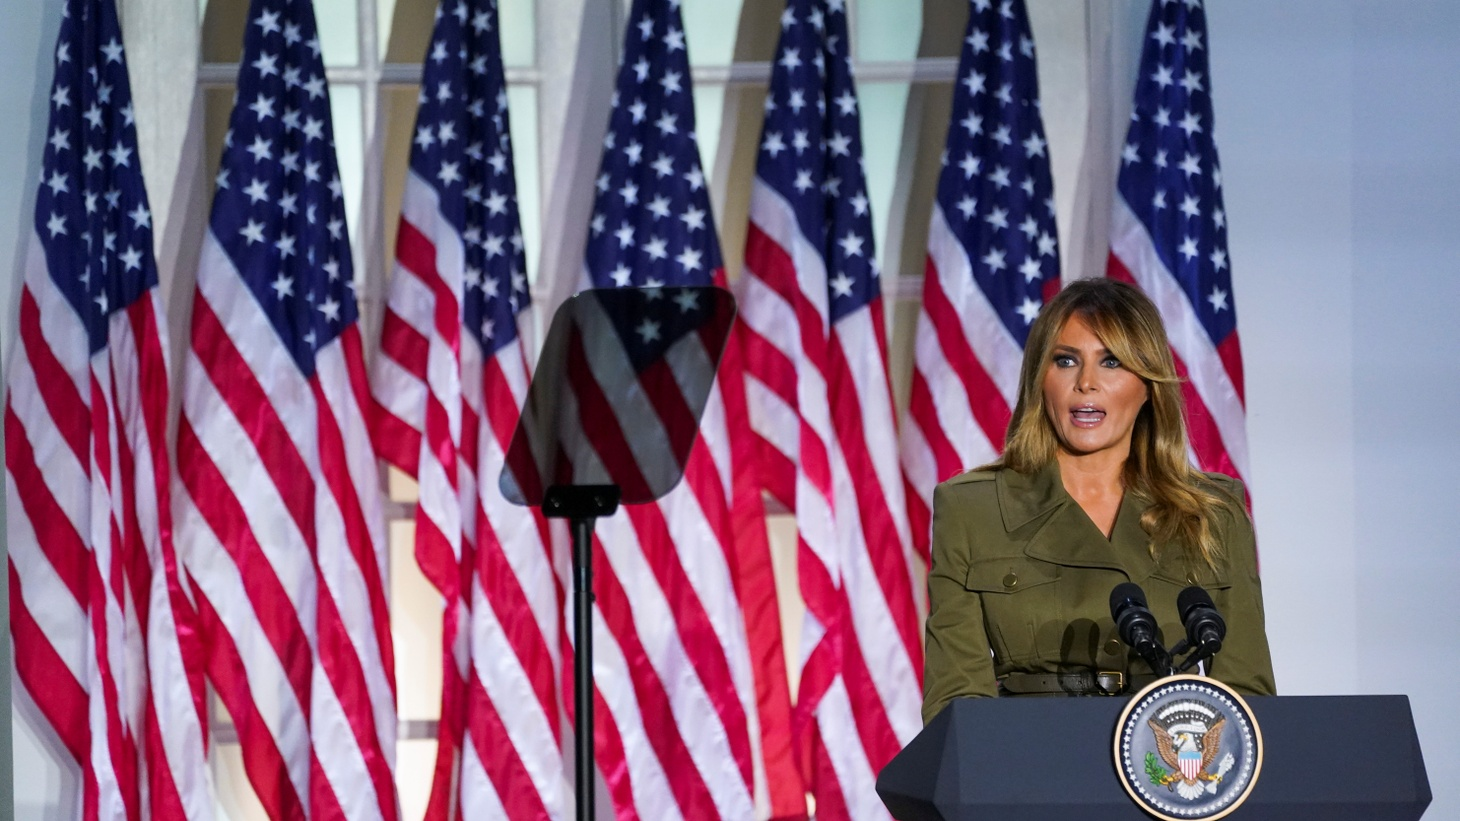 U.S. first lady Melania Trump delivers a live address to the largely virtual 2020 Republican National Convention from the Rose Garden of the White House in Washington, U.S., August 25, 2020.